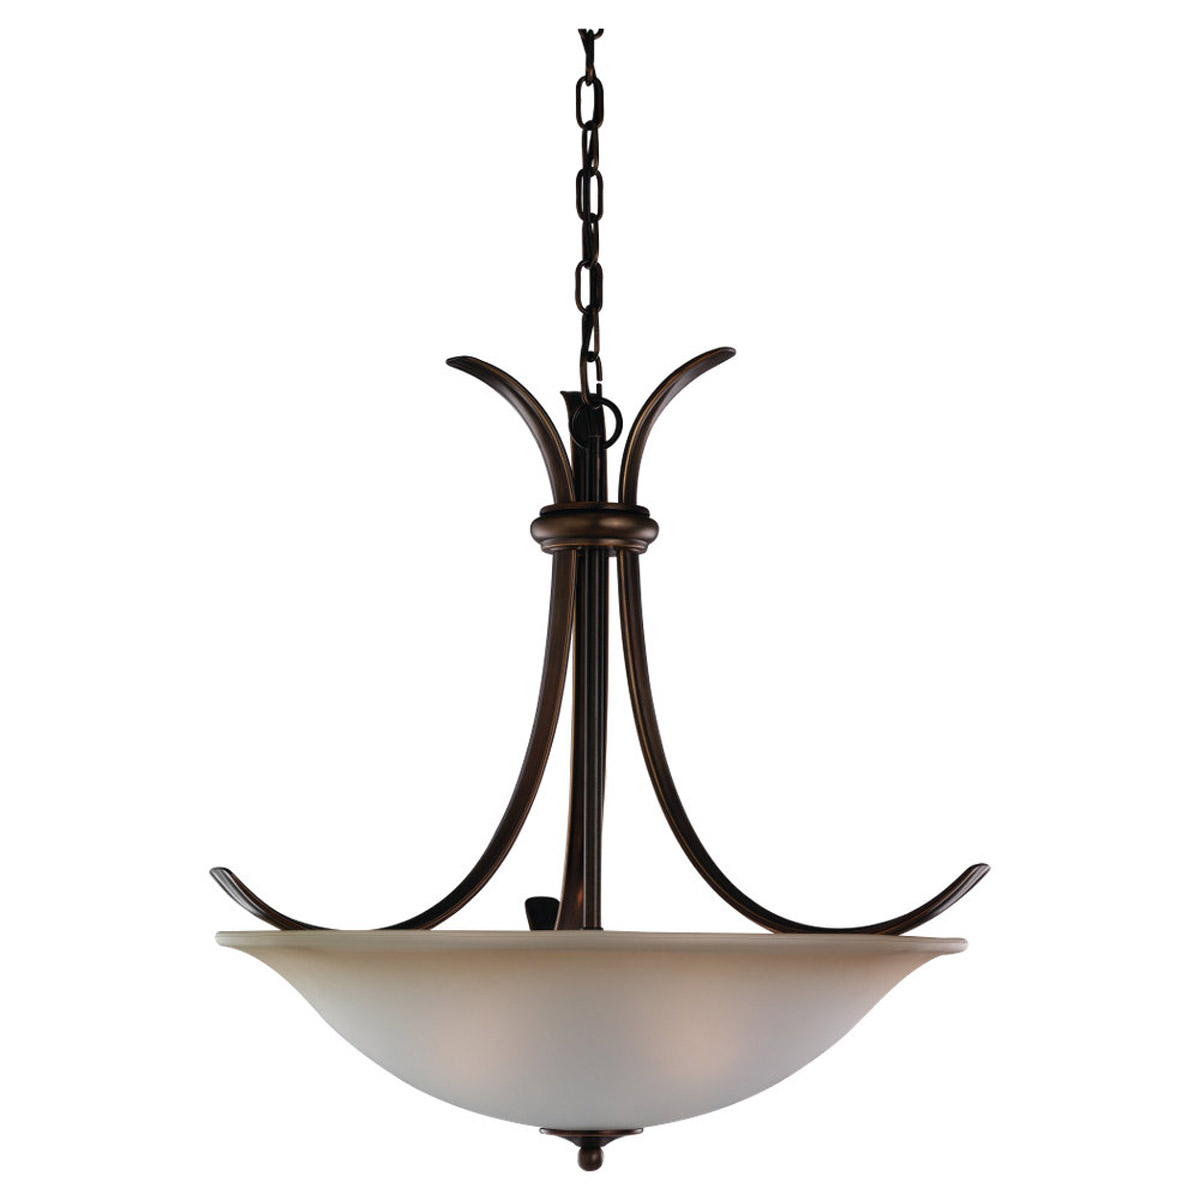 Sea Gull Lighting Rialto 3 Light Pendant in Russet Bronze 65361-829